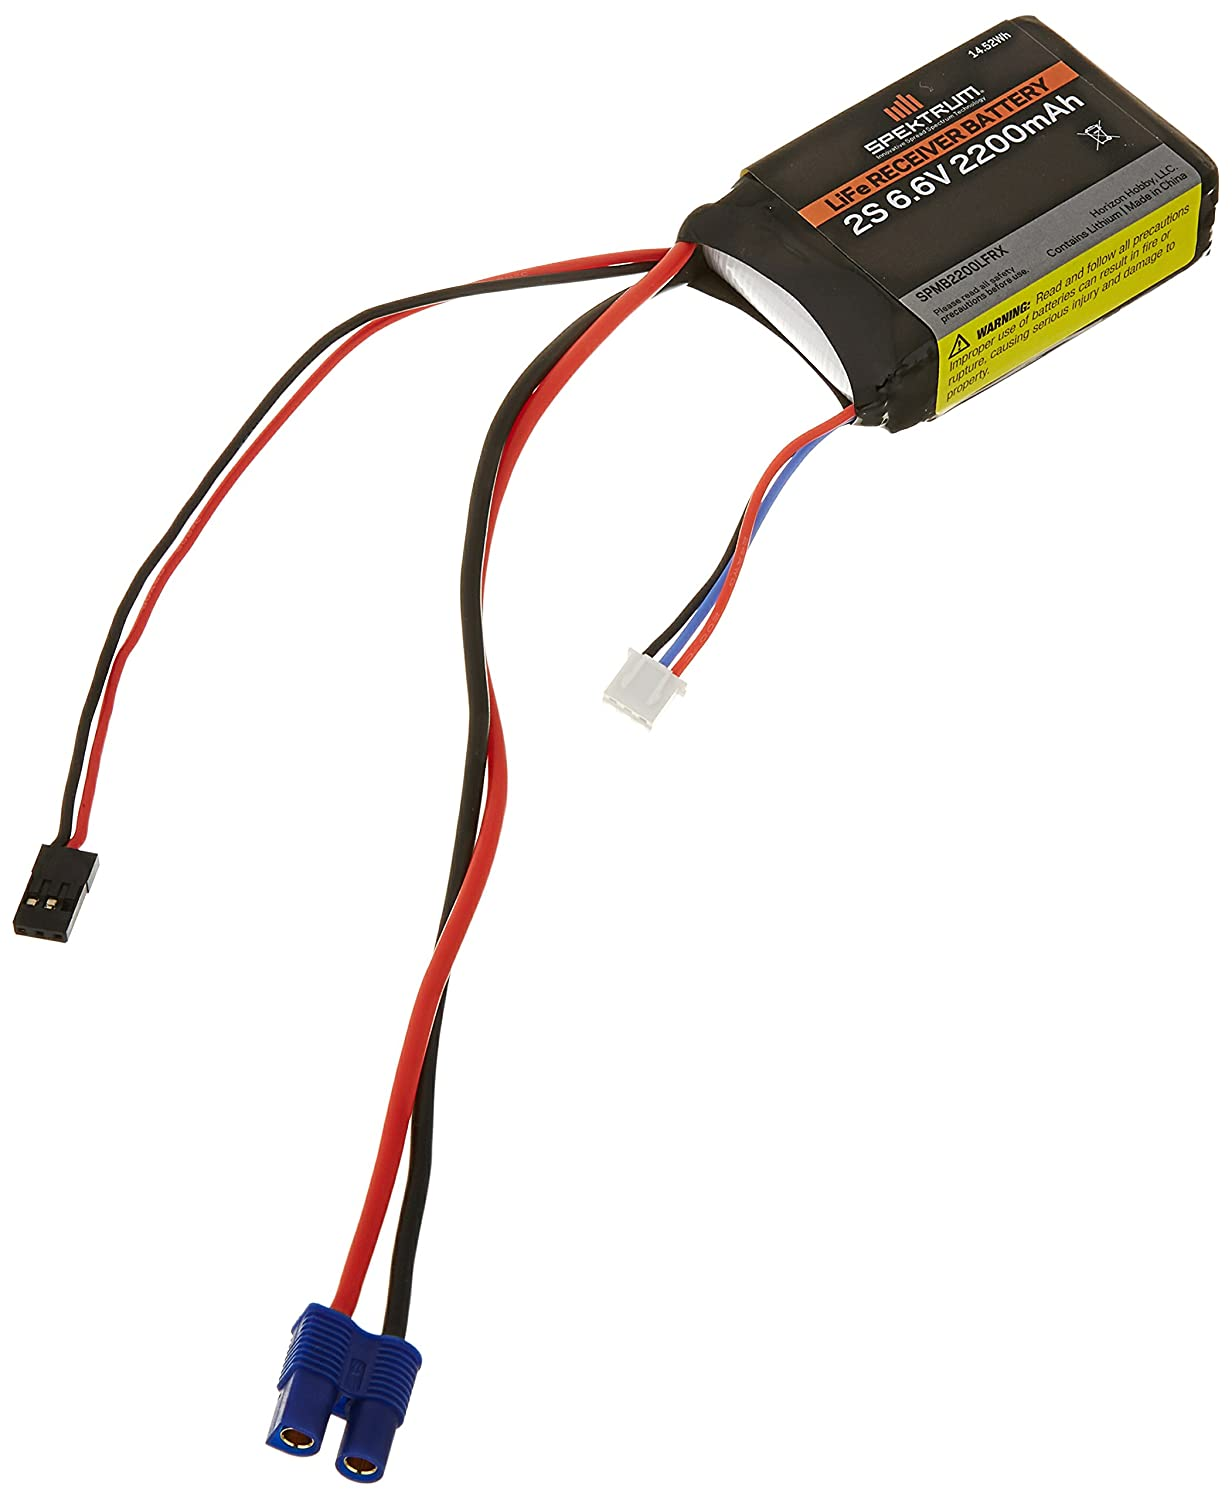 2. Spektrum 2200mAh 2S 6.6V Li-Fe Receiver Battery